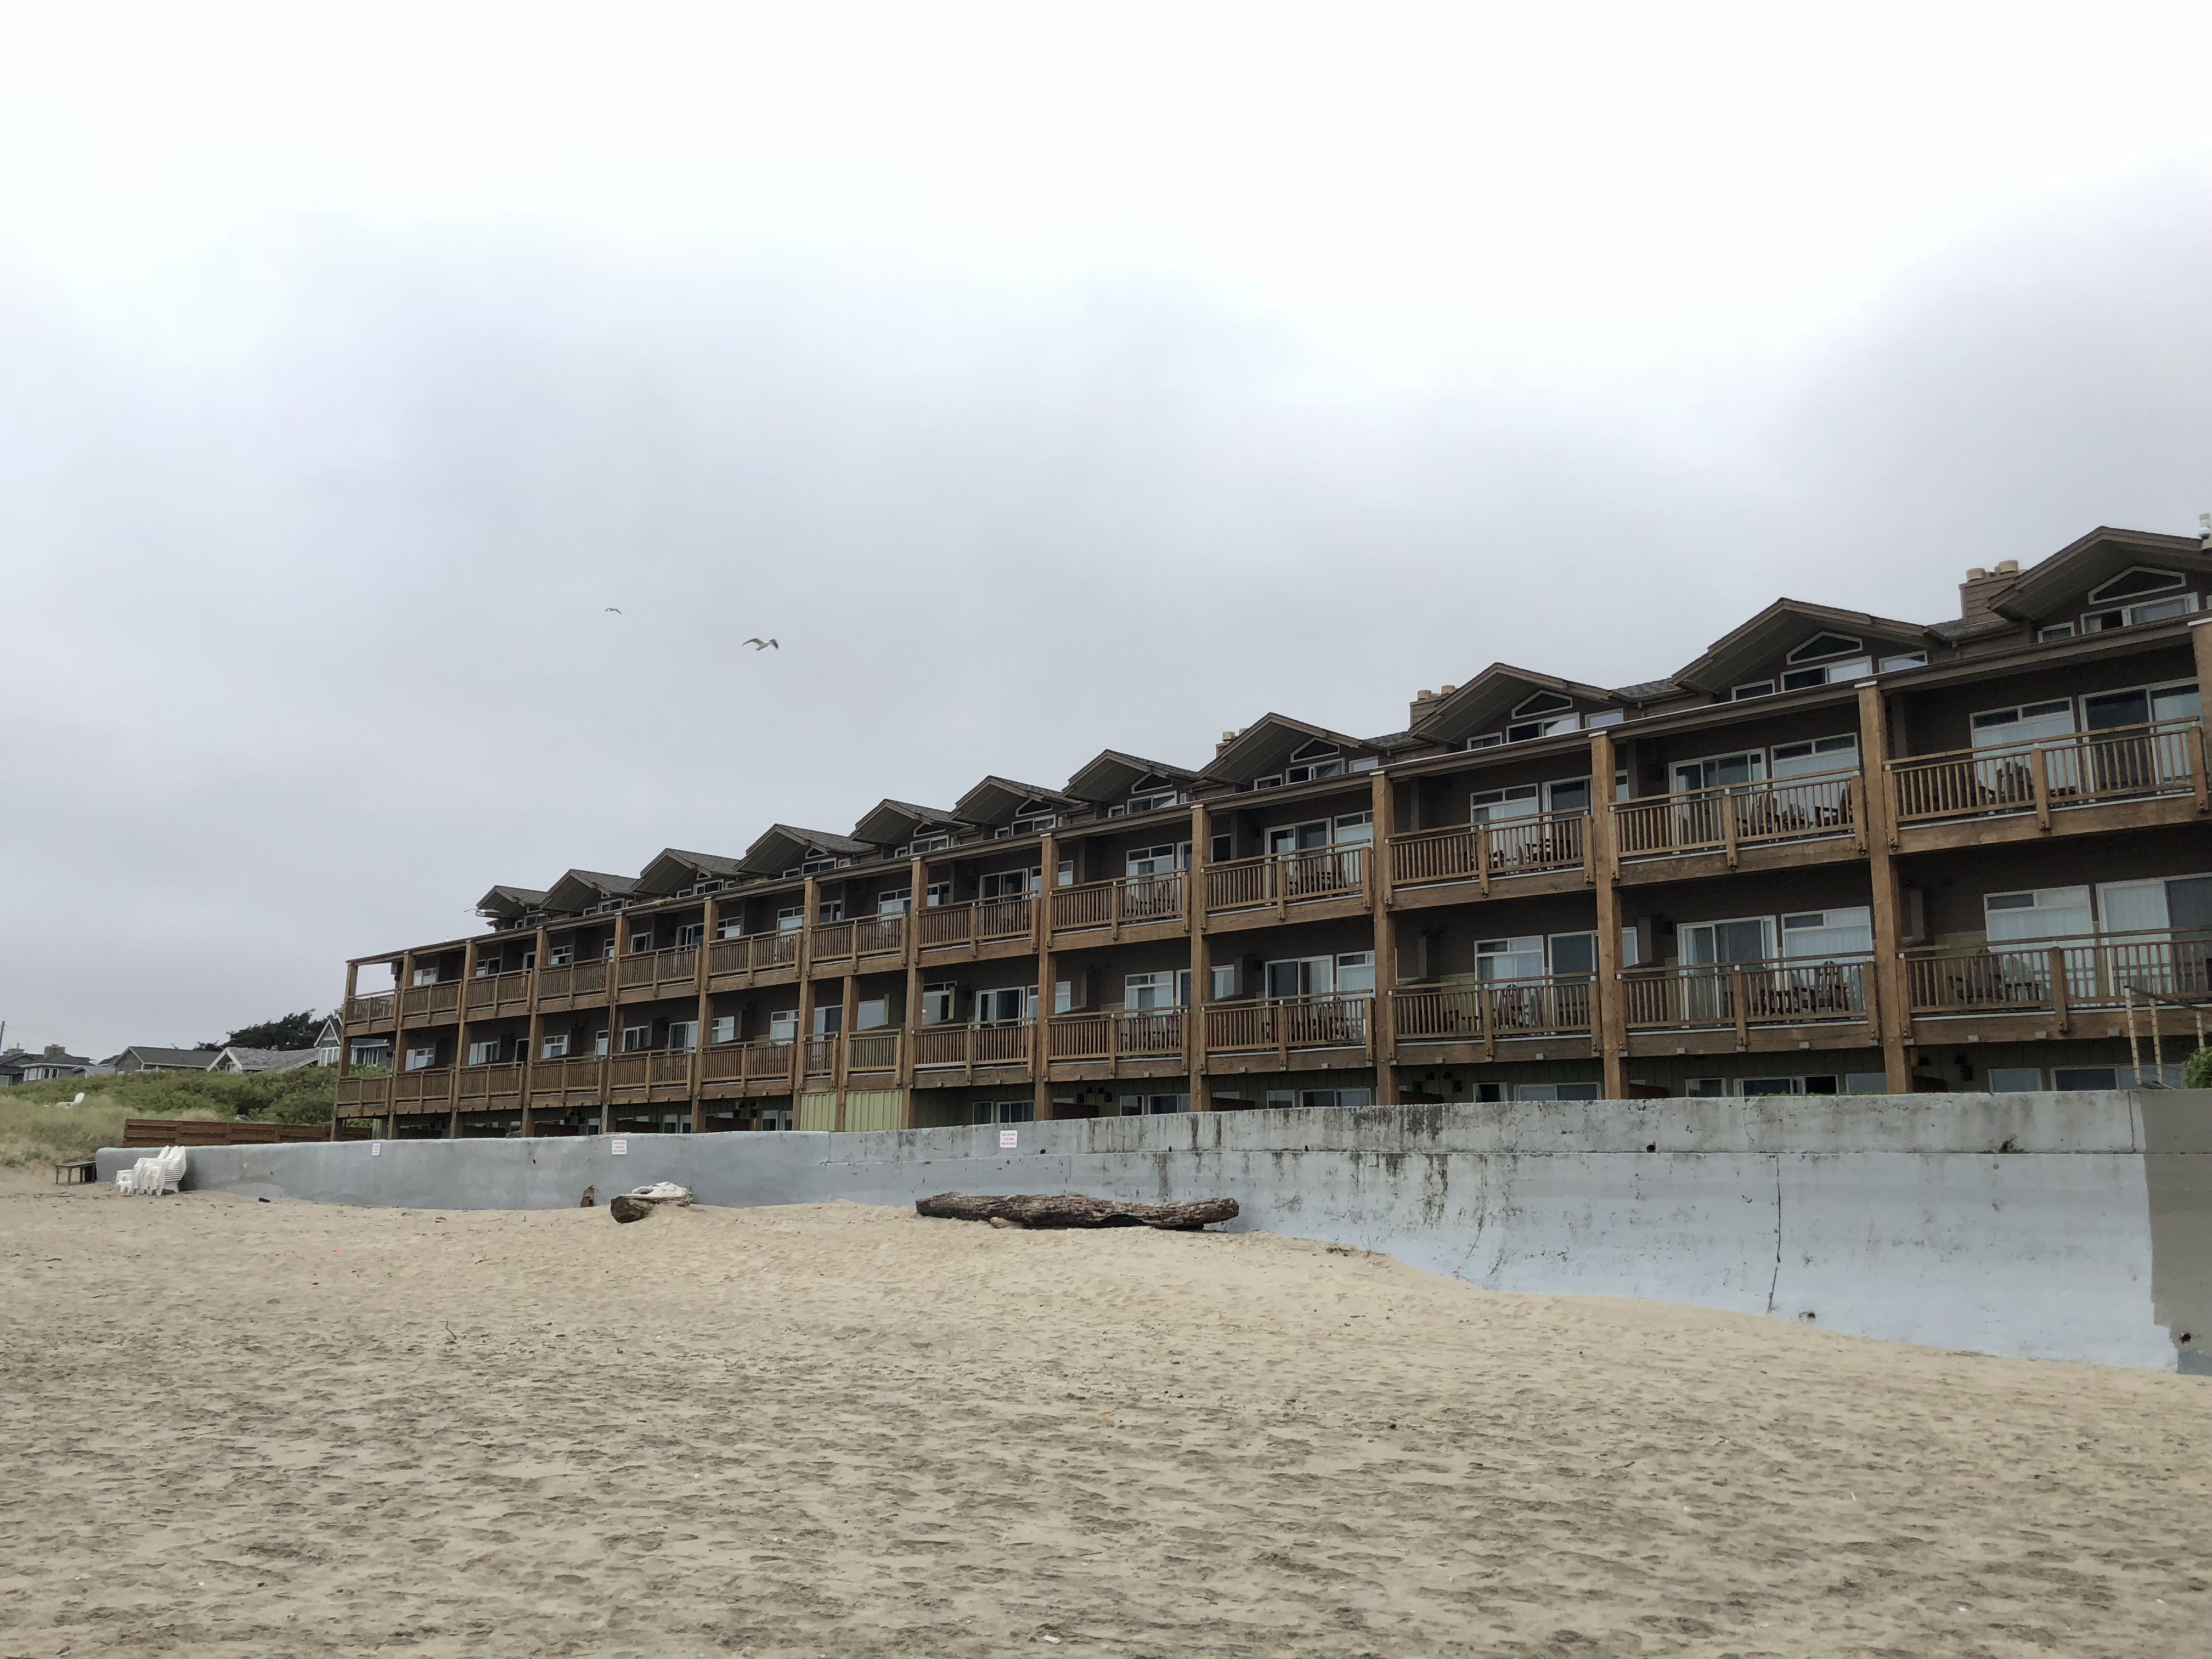 The view of Surfsand Resort in Cannon Beach, Oregon from the beach.